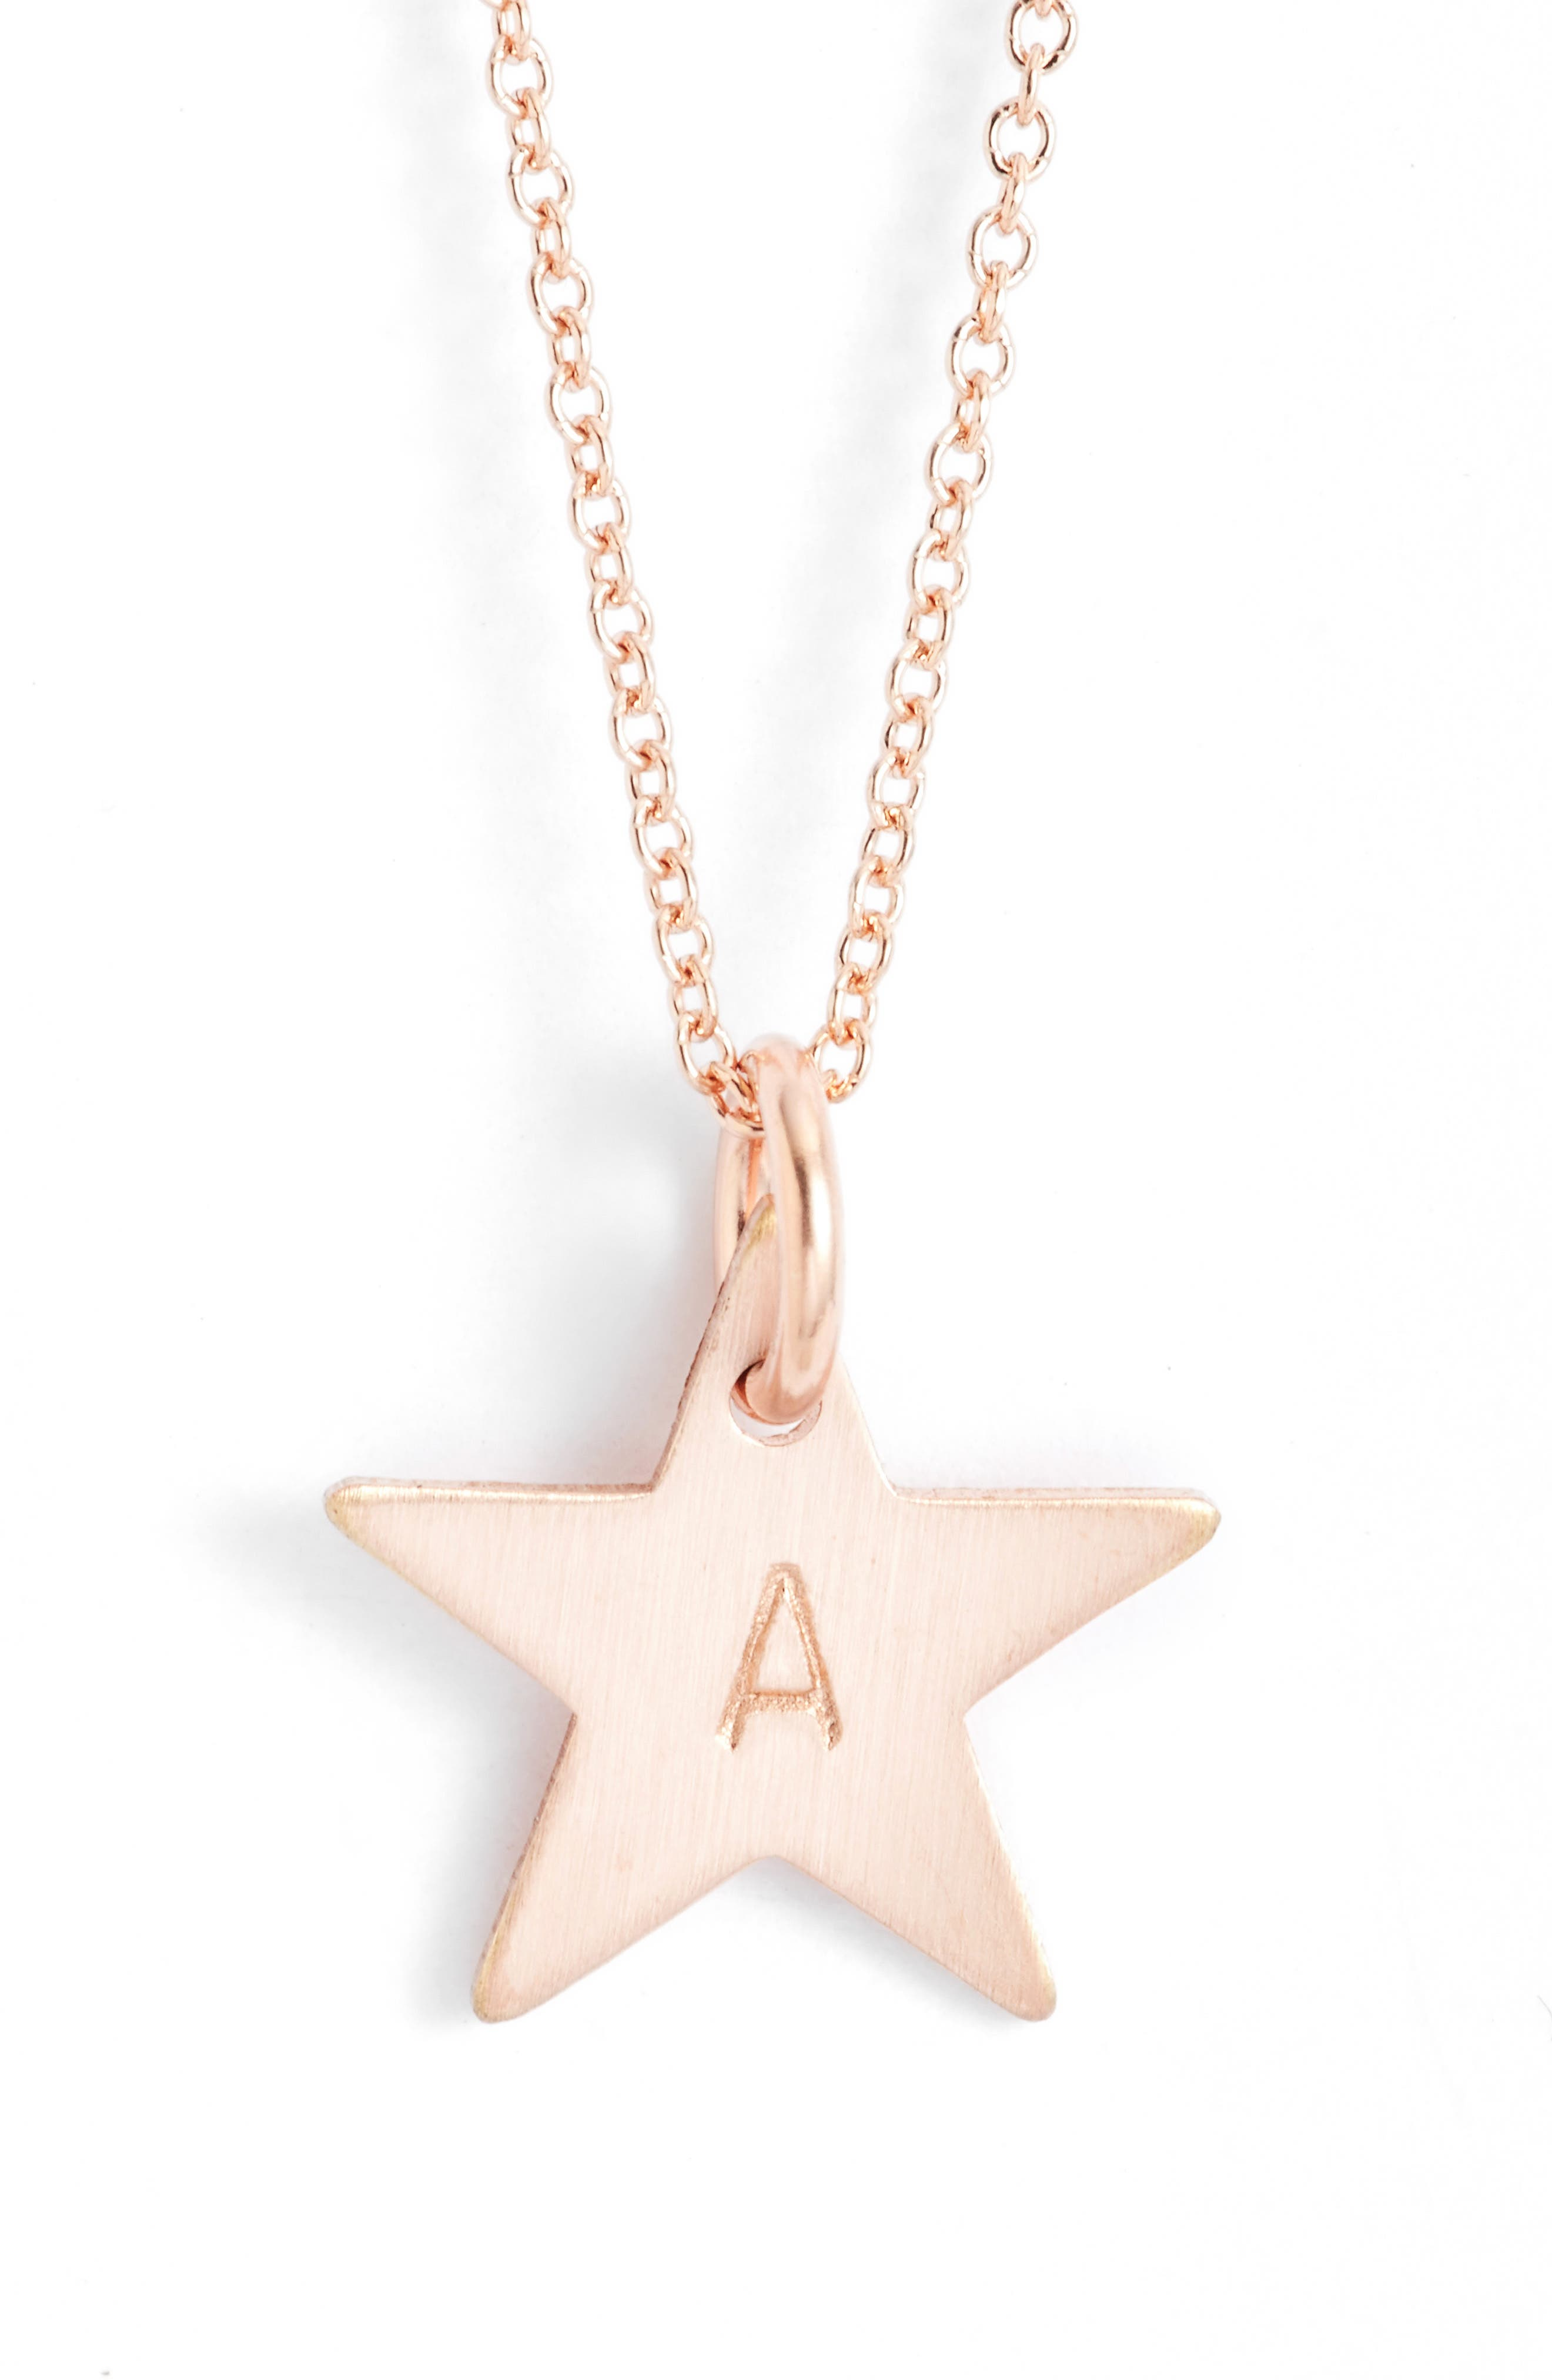 14k-Rose Gold Fill Initial Mini Star Pendant Necklace,                         Main,                         color, Rose Gold/ A